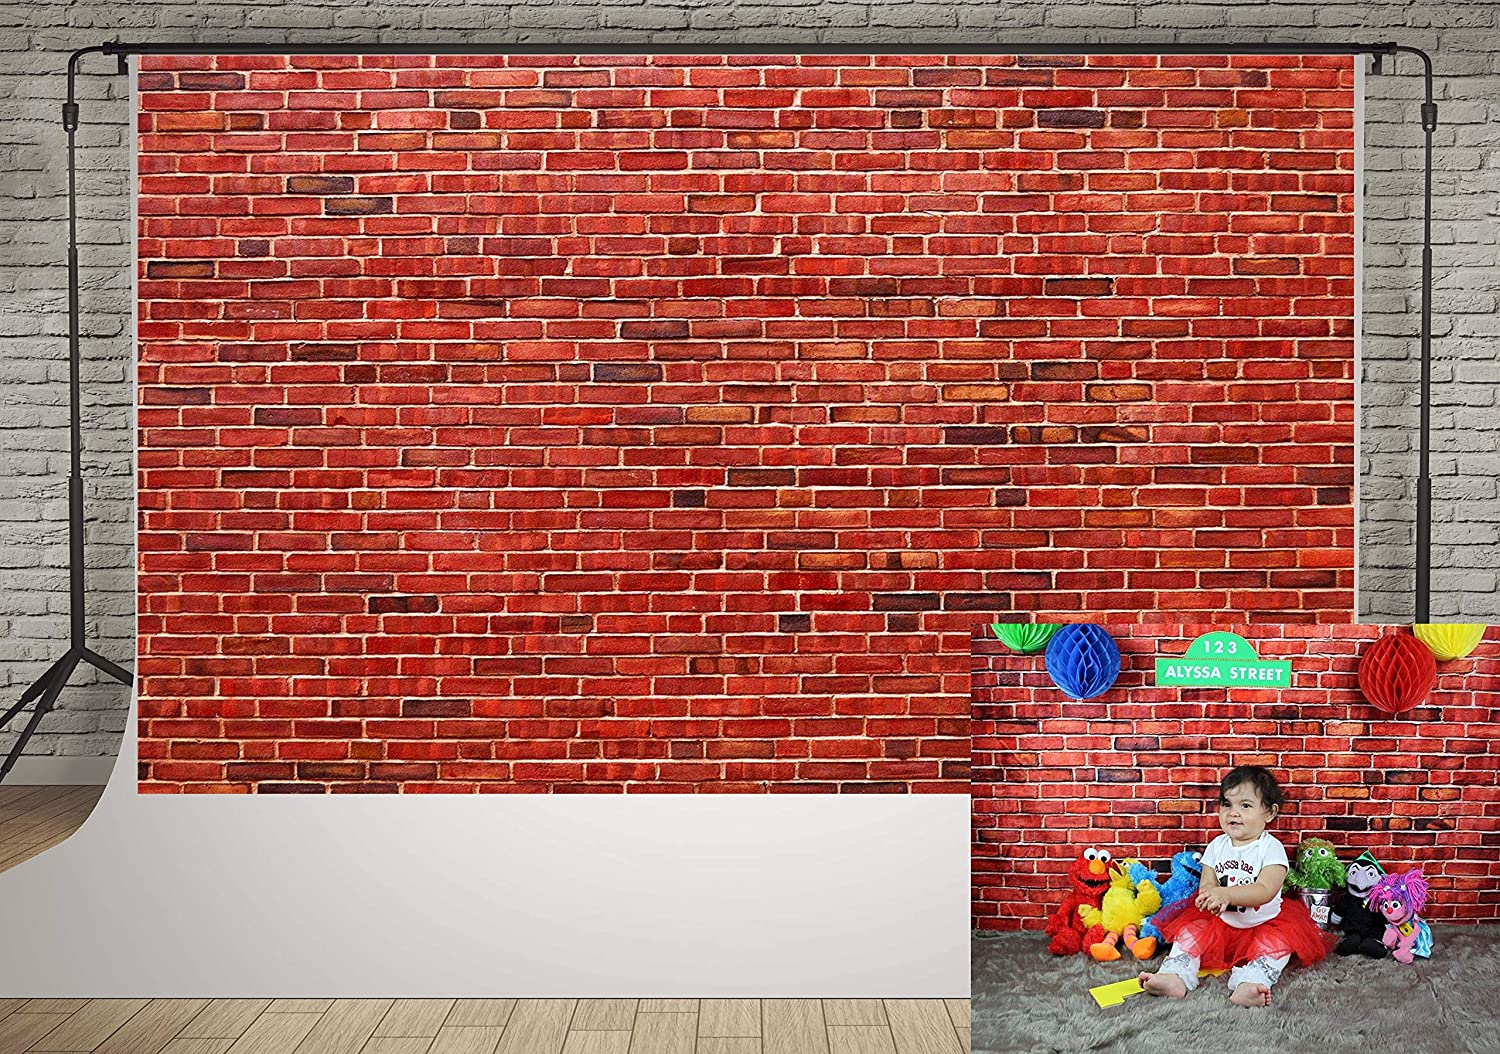 7x5ft Vintage Red Brick Wall Photo Backdrop Newborn Baby Girls Adults Portrait Photography Background Wallpaper Photo Studio Props